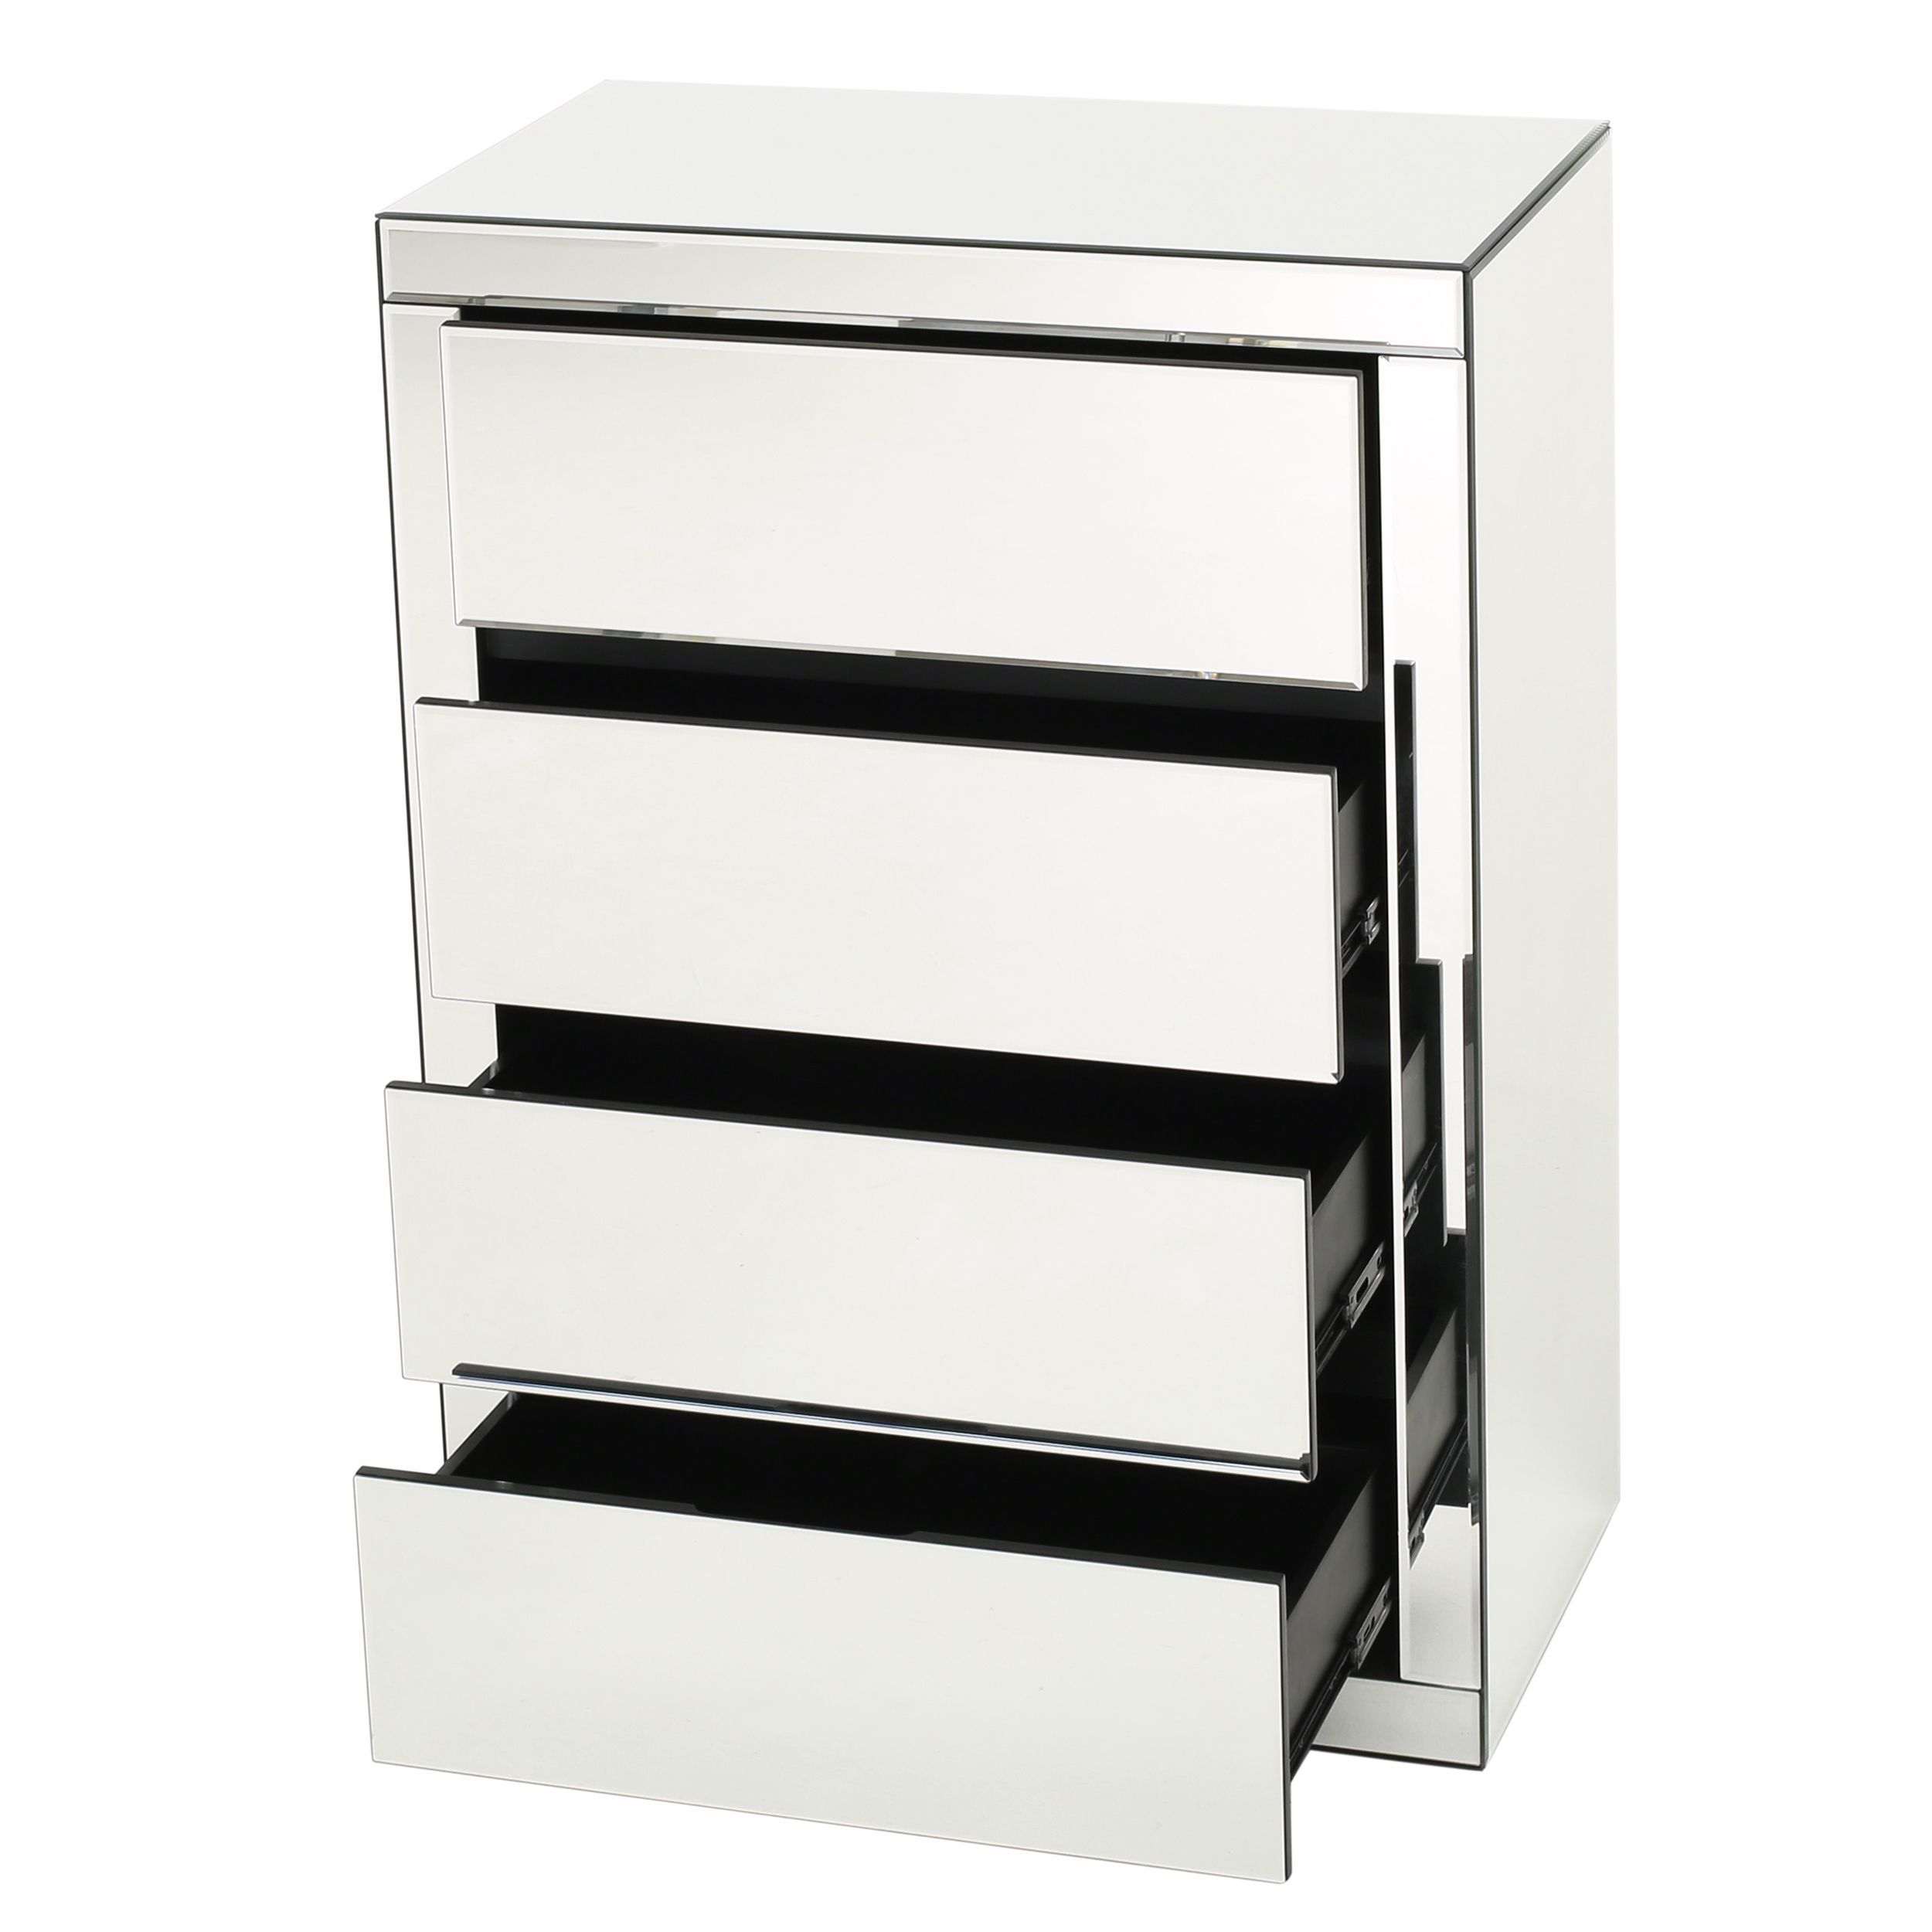 Christopher Knight Home Lada Hard 3-drawer Mirrored Cabinet